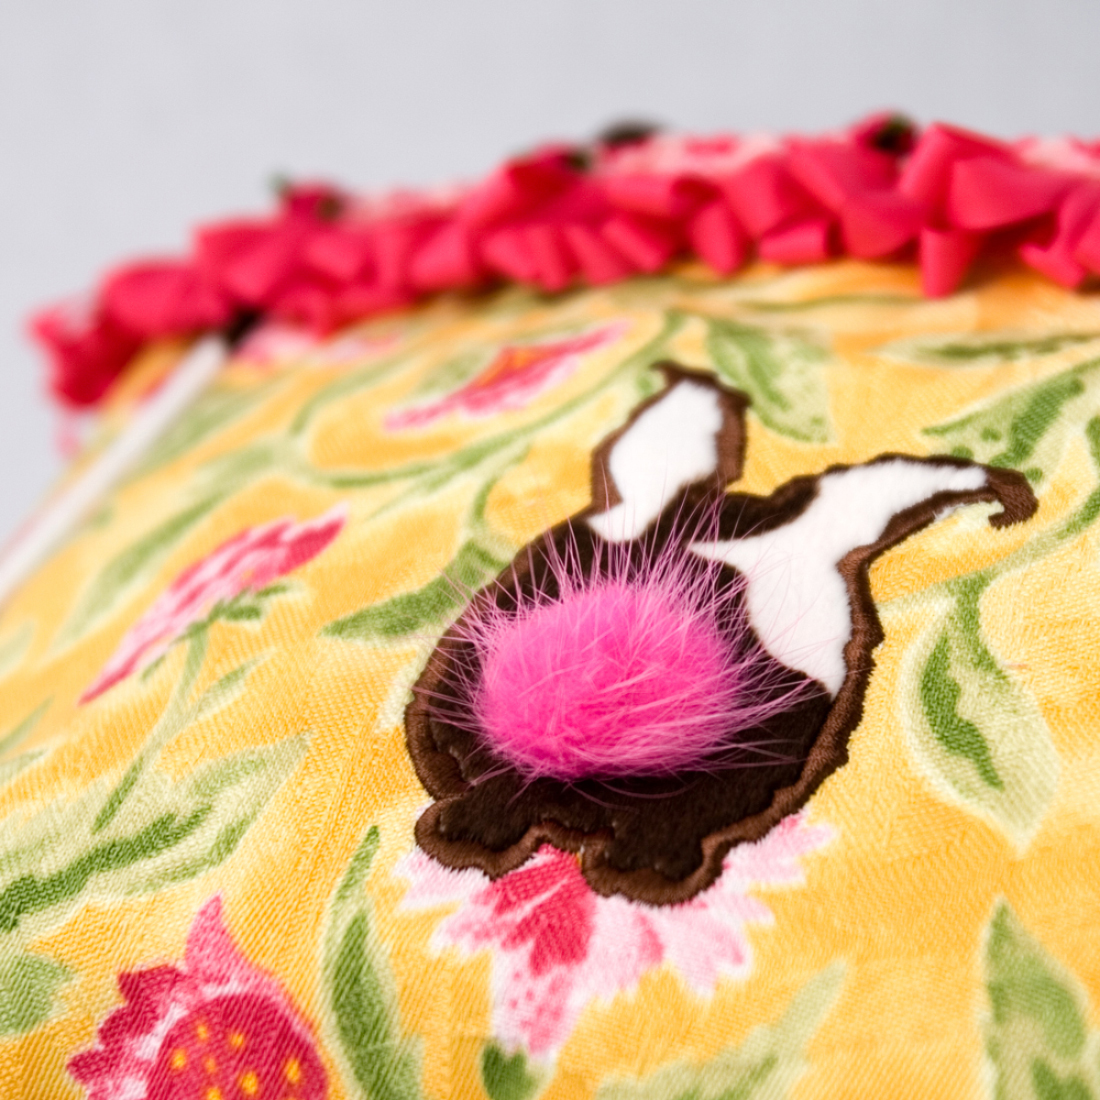 PRODUCT PHOTOS - Cowbunnies - ©UnParalleled, LLC dba UP-Ideas / Roger Sawhill / Mark Braught - Atlanta, Georgia | Lawrenceville, Georgia | Commerce, Georgia